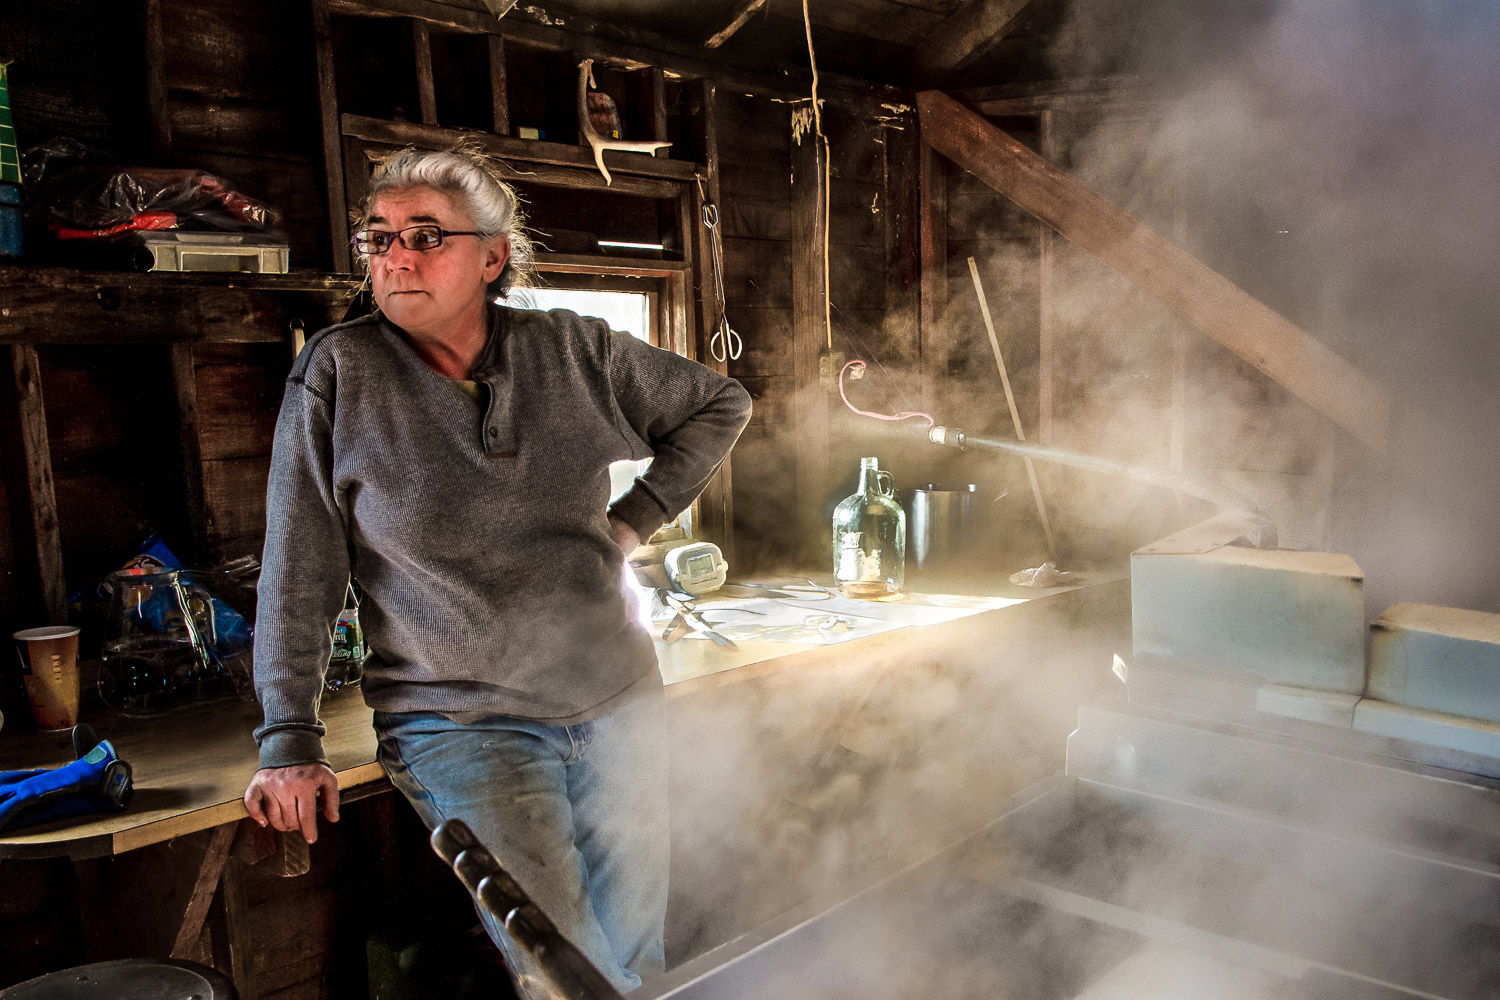 Maple-Syrup-Maker-Surrounded-By-Steam-BW.jpg